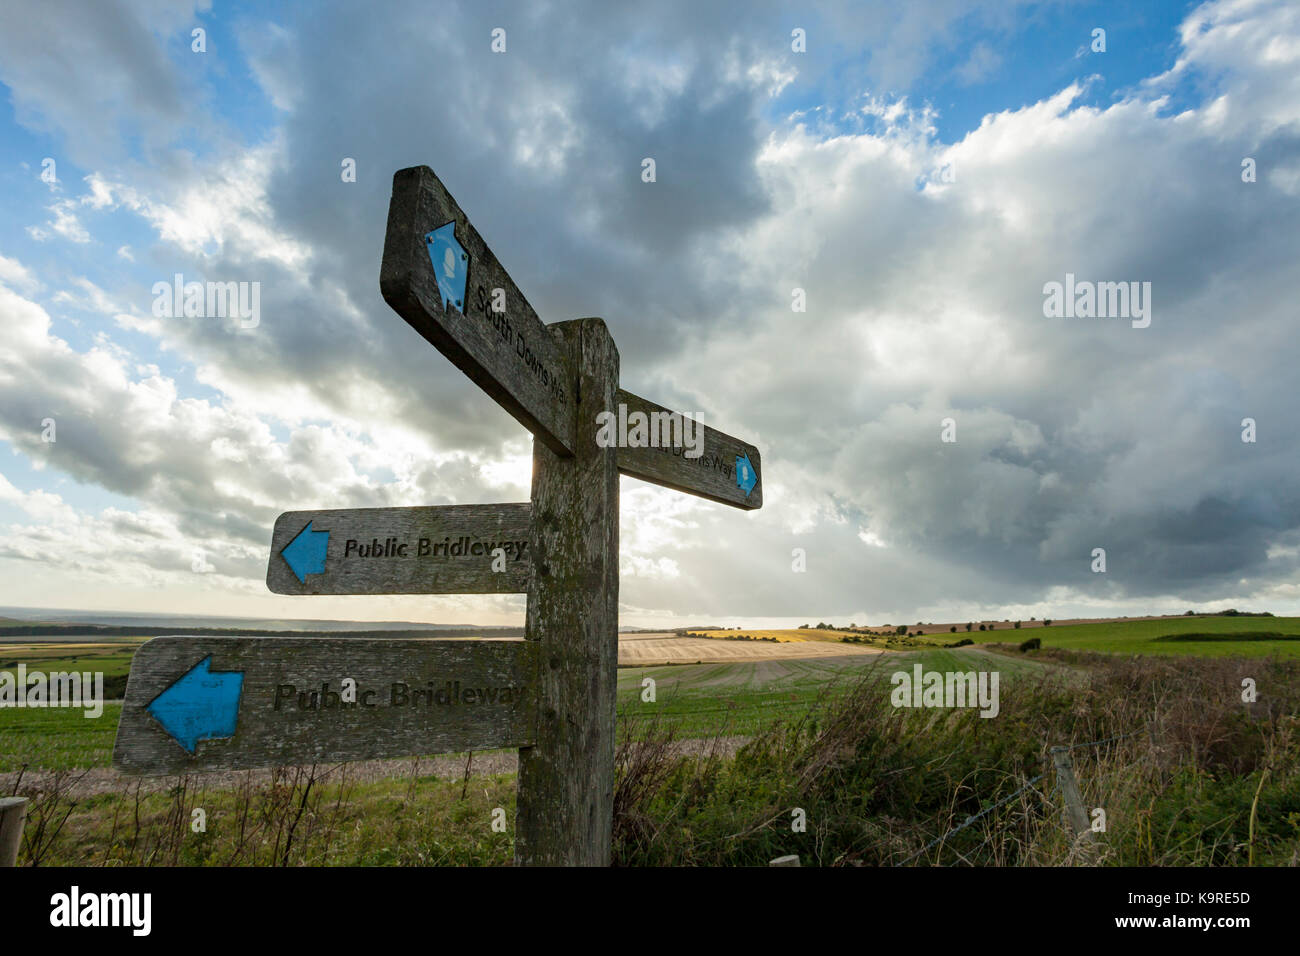 Signpost on South Downs Way in West Sussex, England. - Stock Image